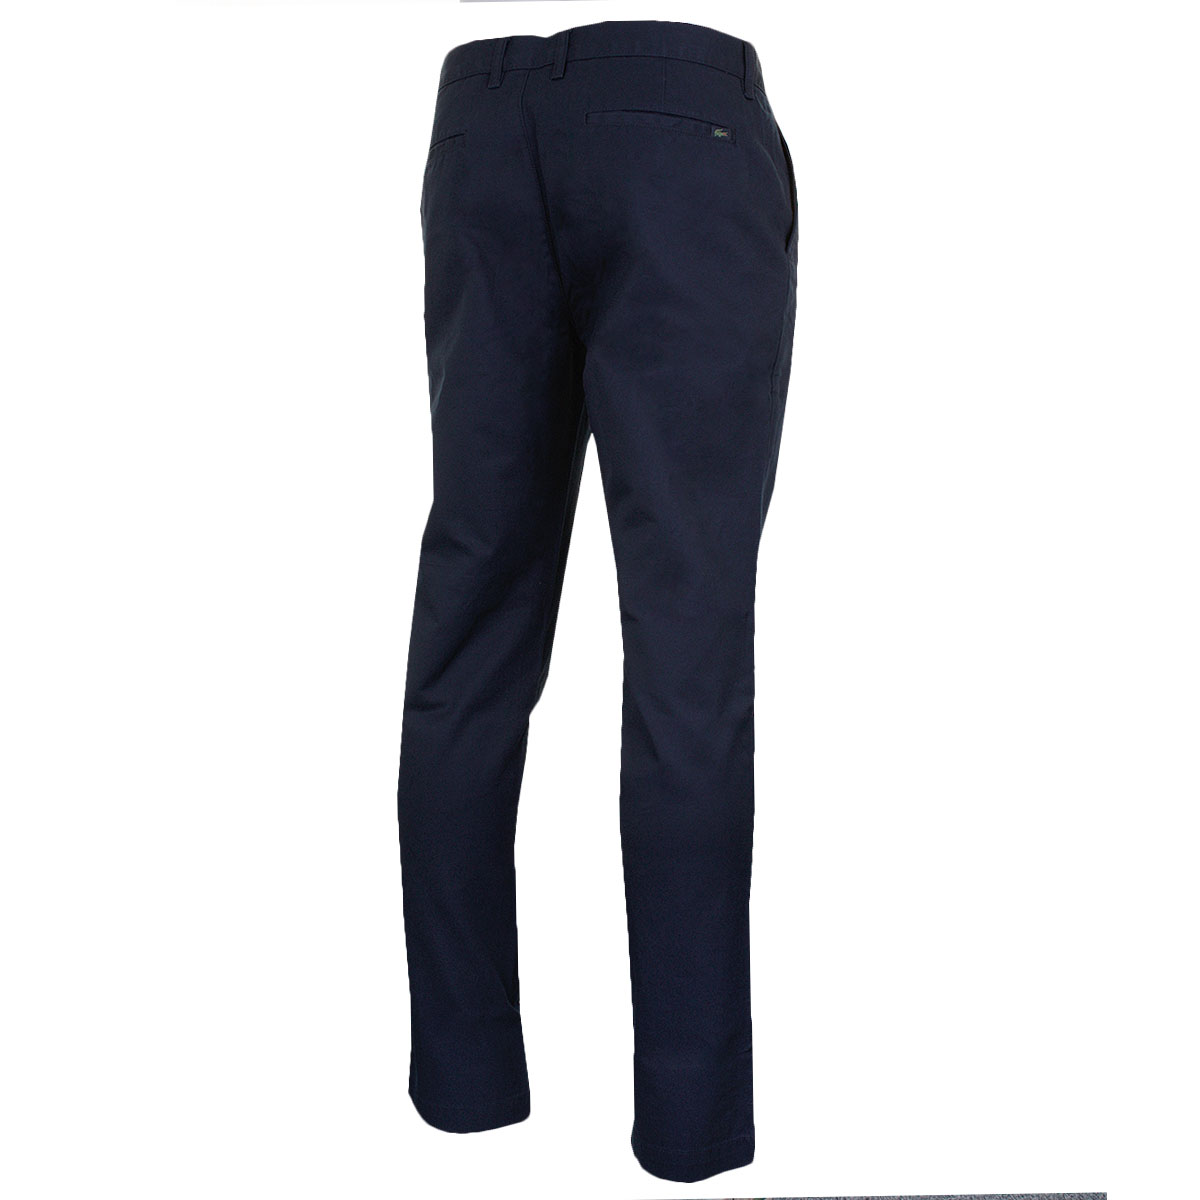 b83553808f Lacoste Mens Chino Pant HH5742 Slim Fit Cotton Trousers 28% OFF RRP ...